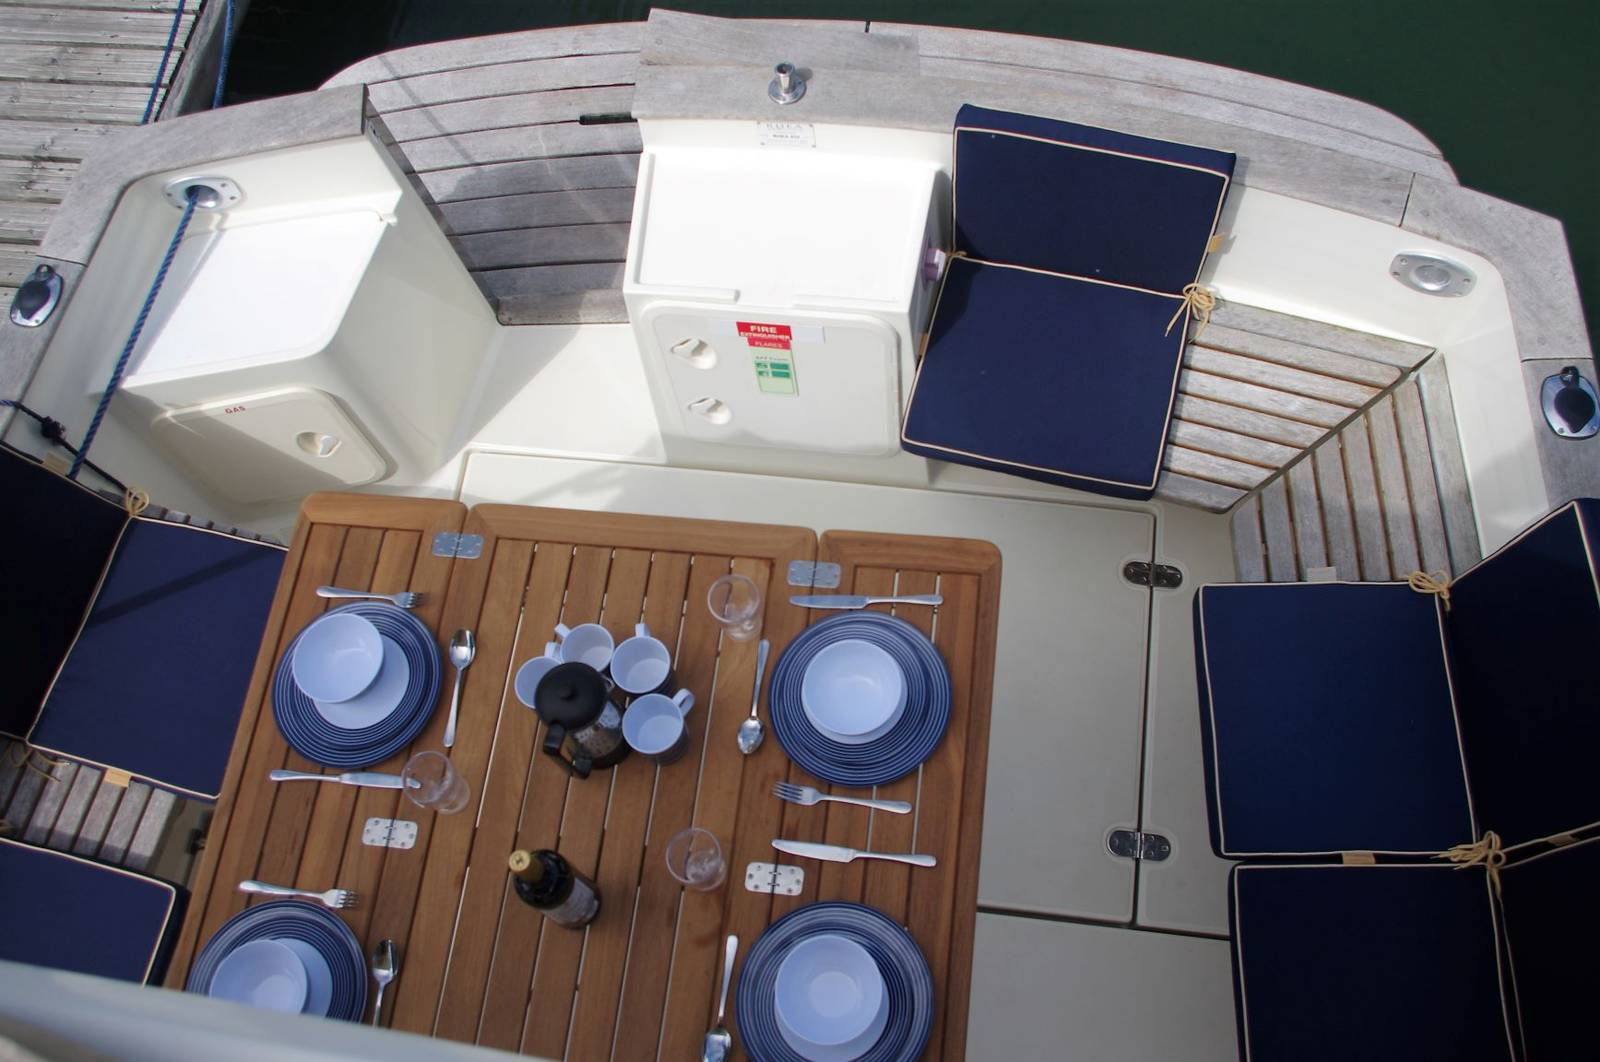 Rhea 850 Timonier (2008) For Sale. www.yachts.co tel: 01646602500 email: neyland@yachts.co Post Code: SA73 1PY